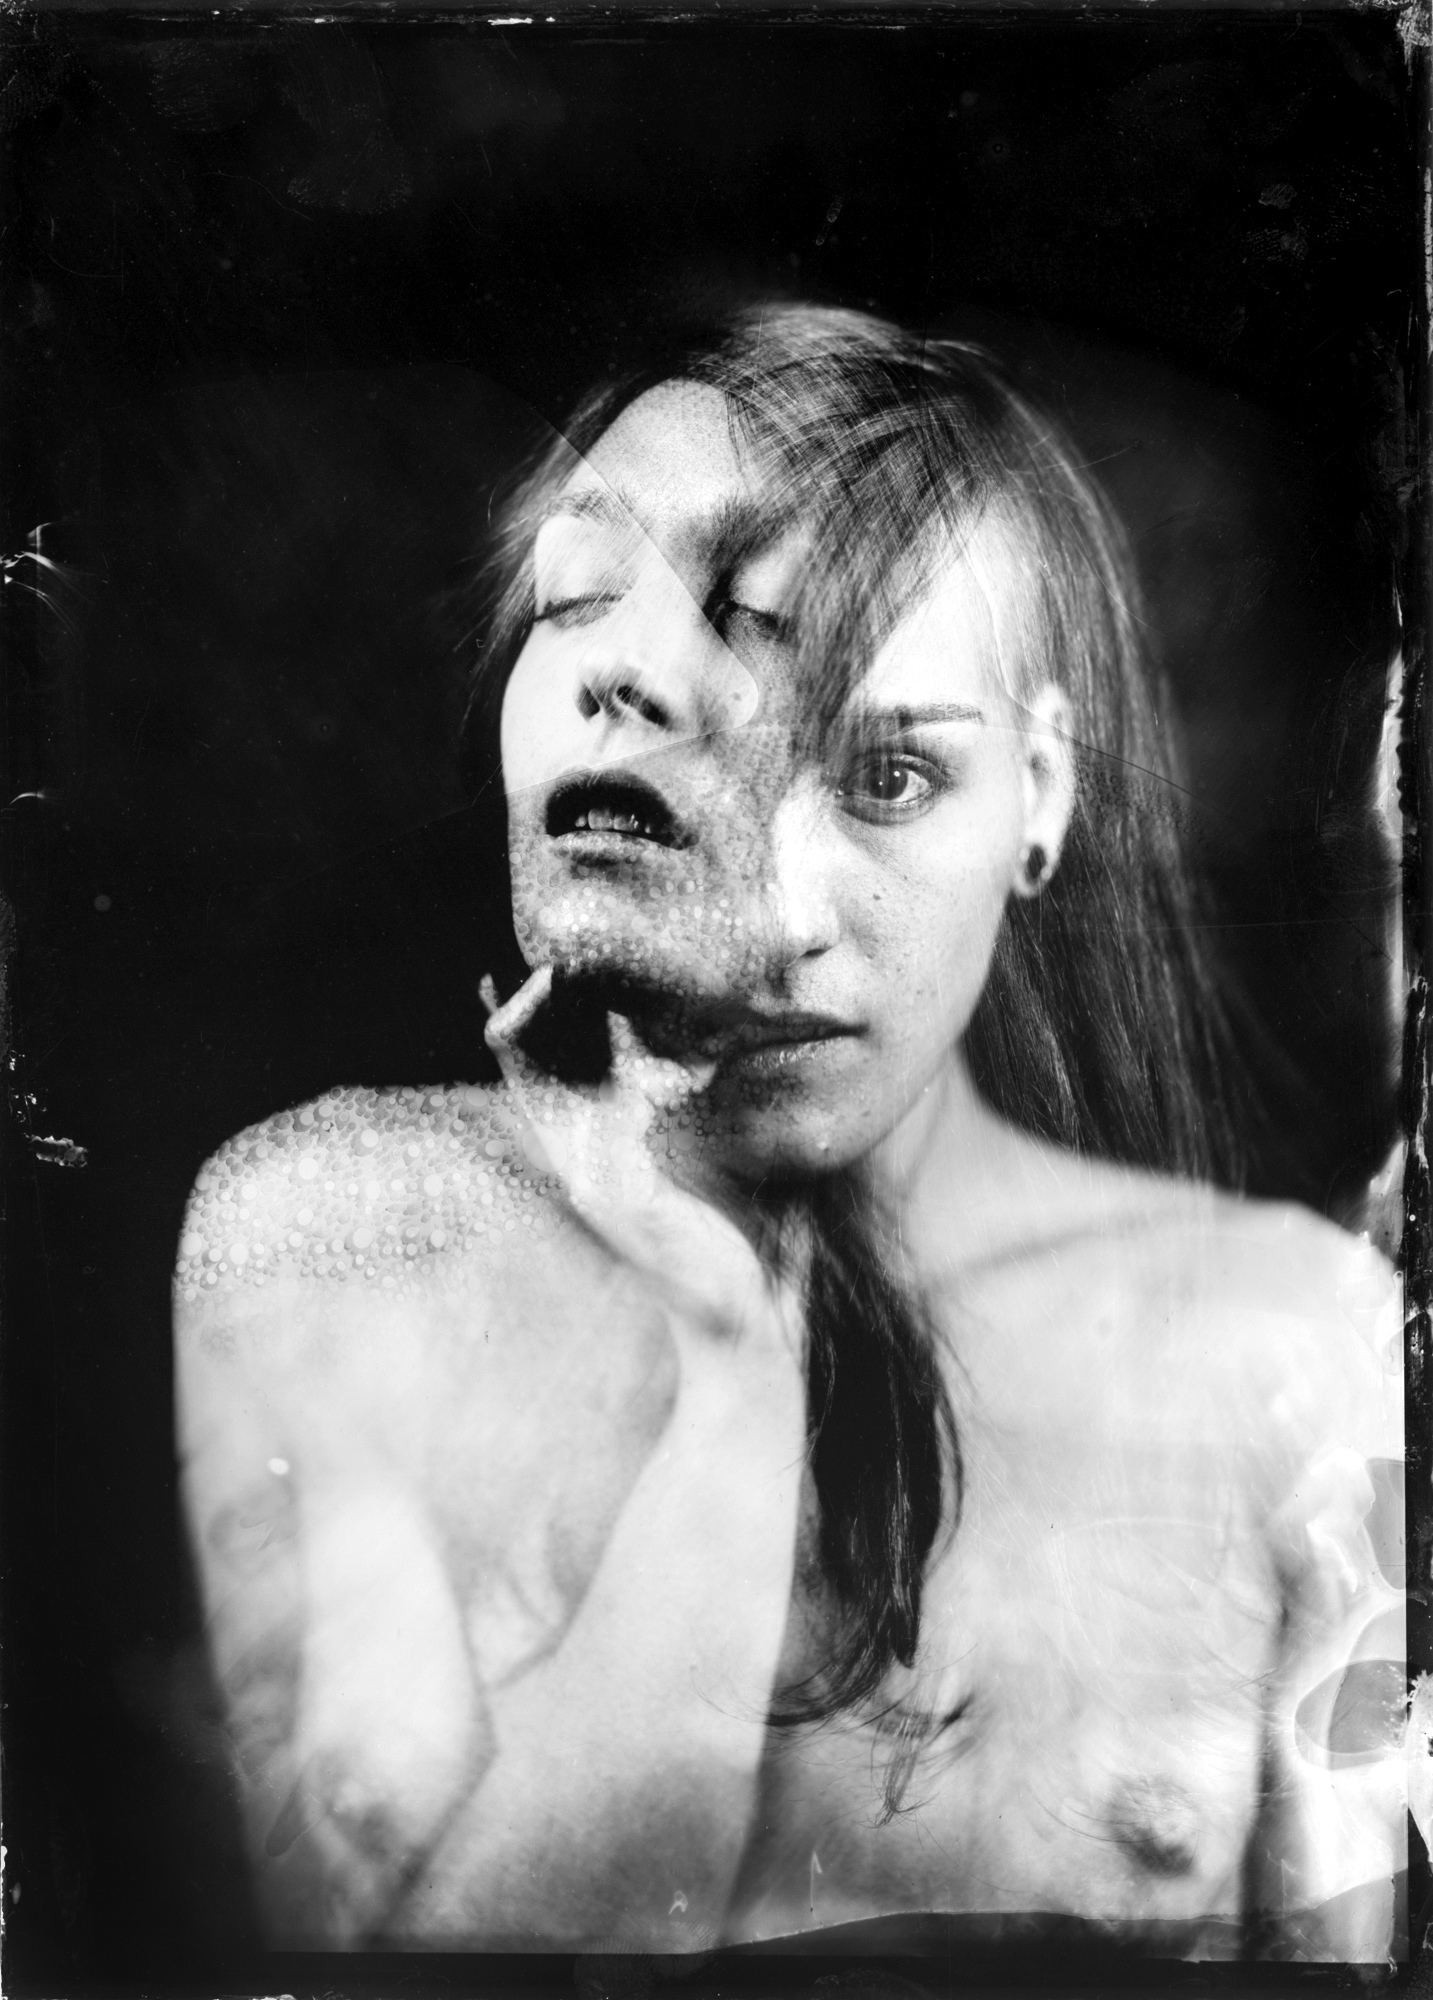 - Marion #1Original Ferrotype 13x18cmin original early XX century photographic frame1300 €Print availableContact us for available sizes and quotation